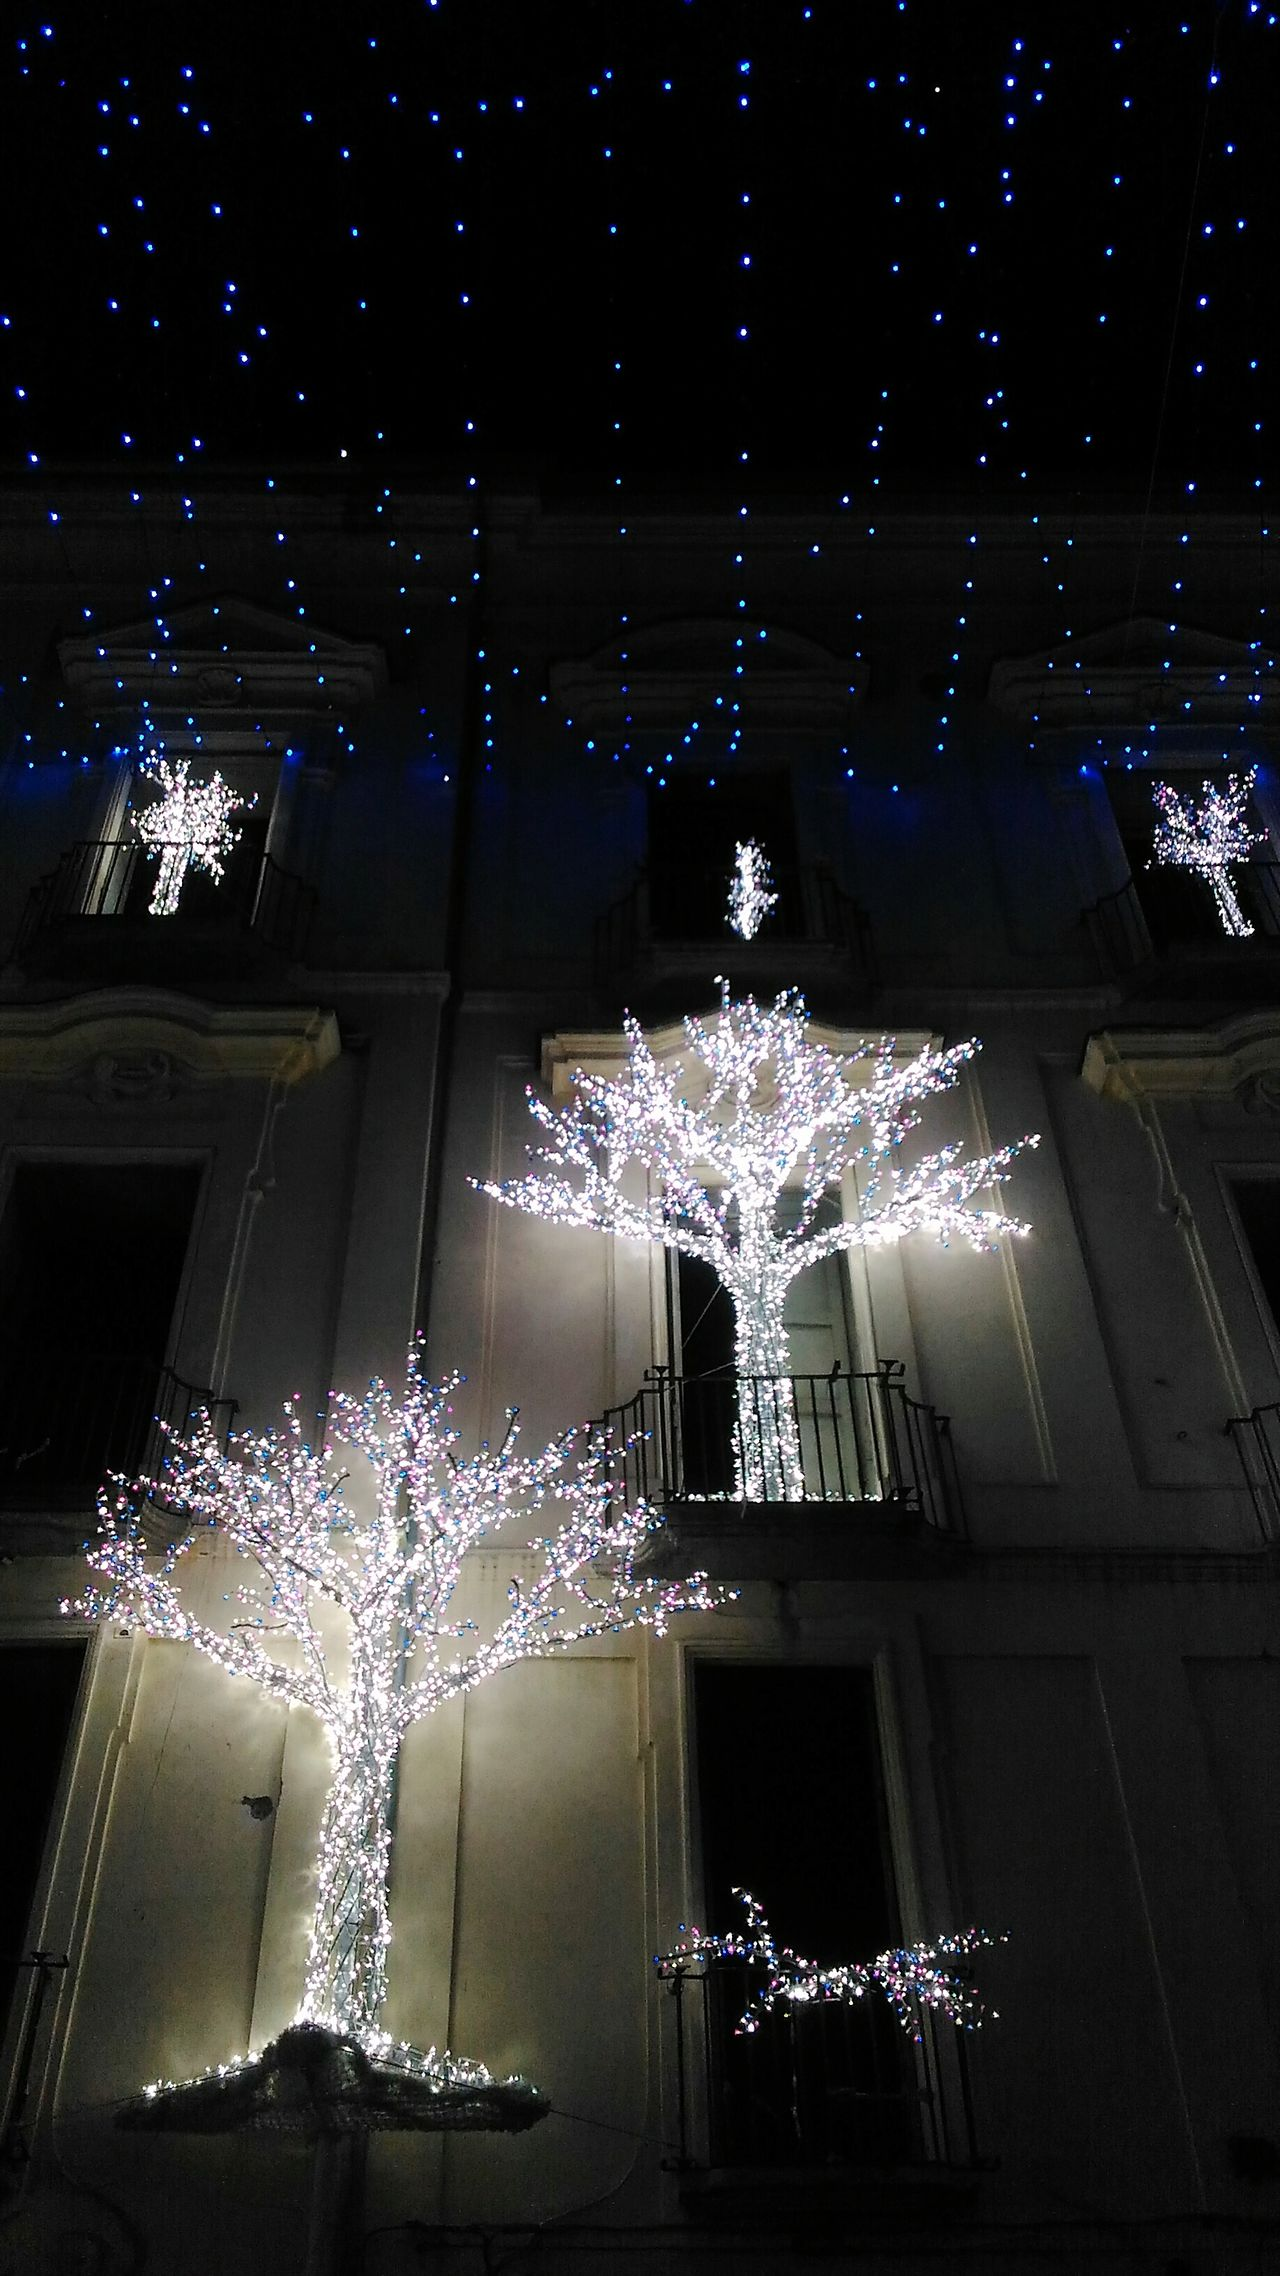 Luci D'artista Luci Di Natale Salerno Italy Illuminated Lighting Equipment Christmas Decoration Night Indoors  Christmas Lights Christmas Low Angle View Holiday - Event No People Light Effect Midnight Stage Light Sky Christmas Ornament Trees Building Exterior White Light